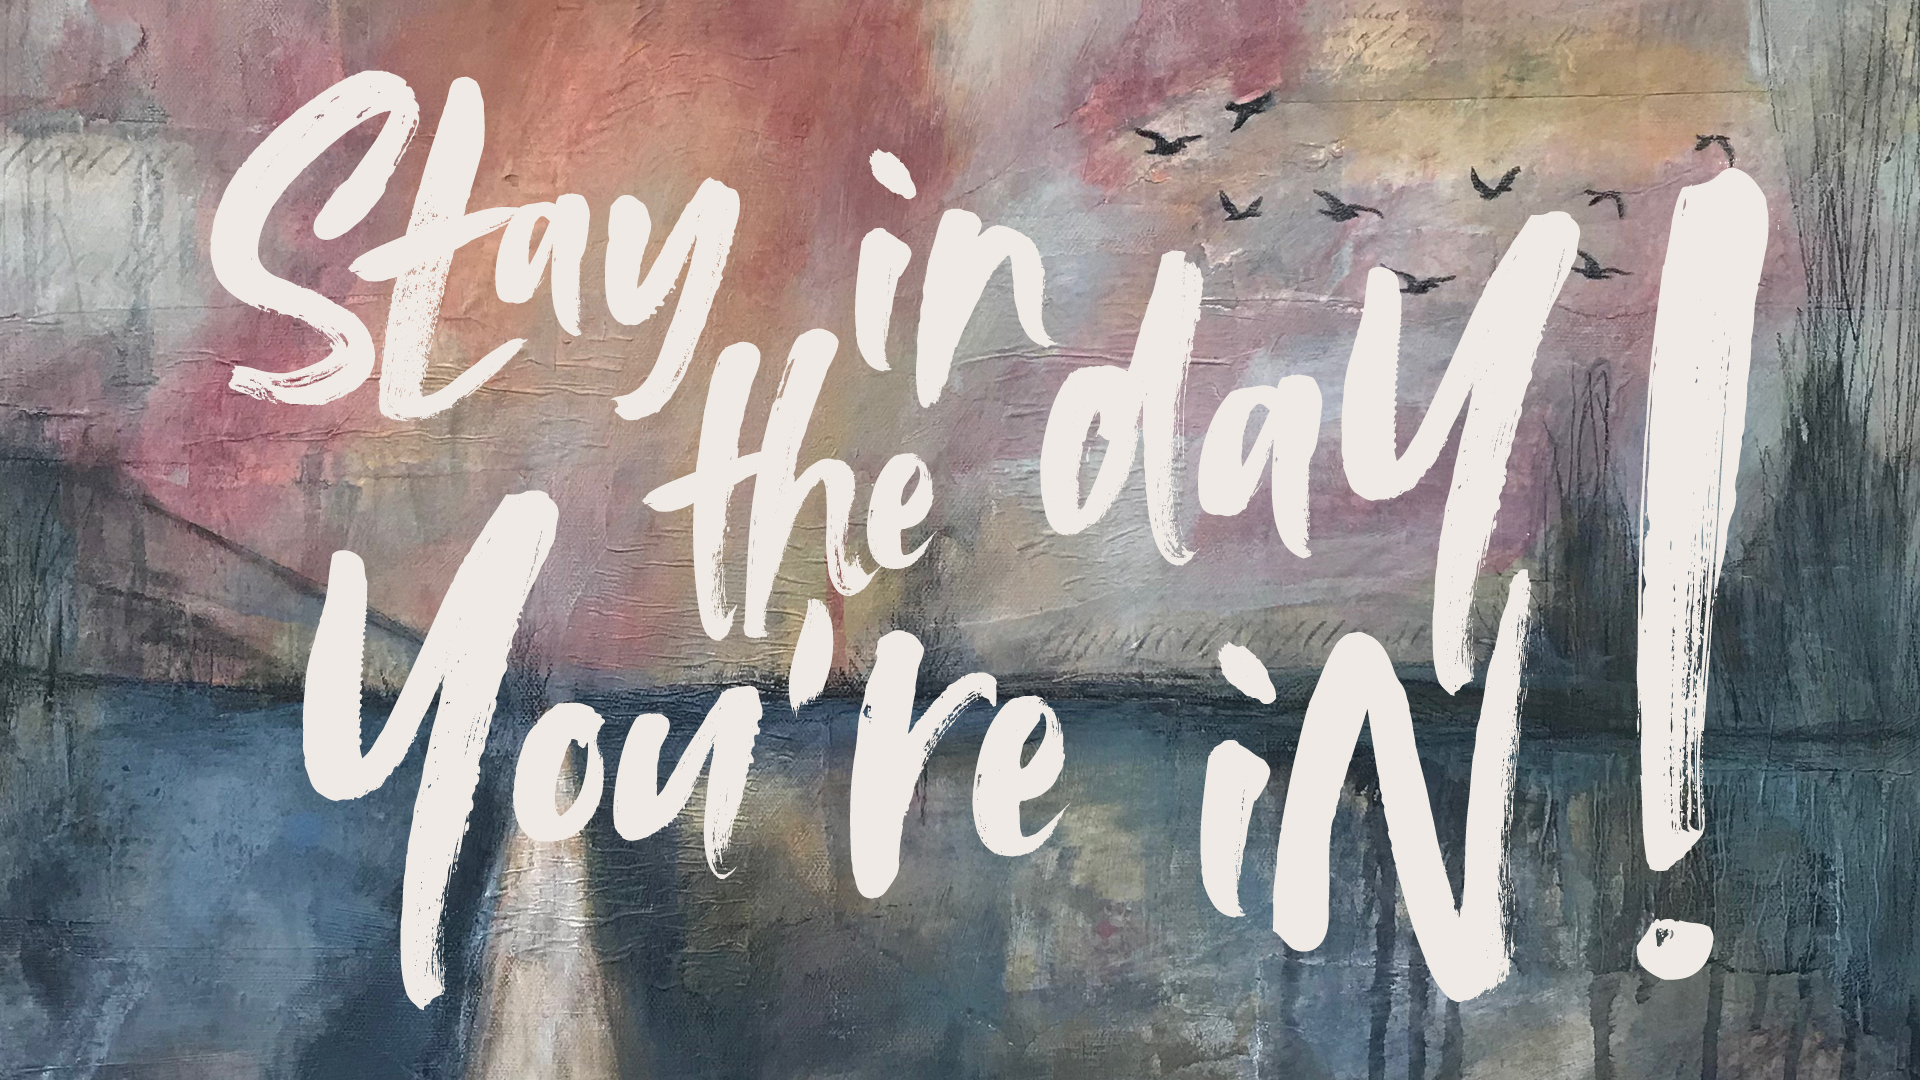 Desktop background - a loving reminder from Createspacestudio.com to stay in the day you're in.